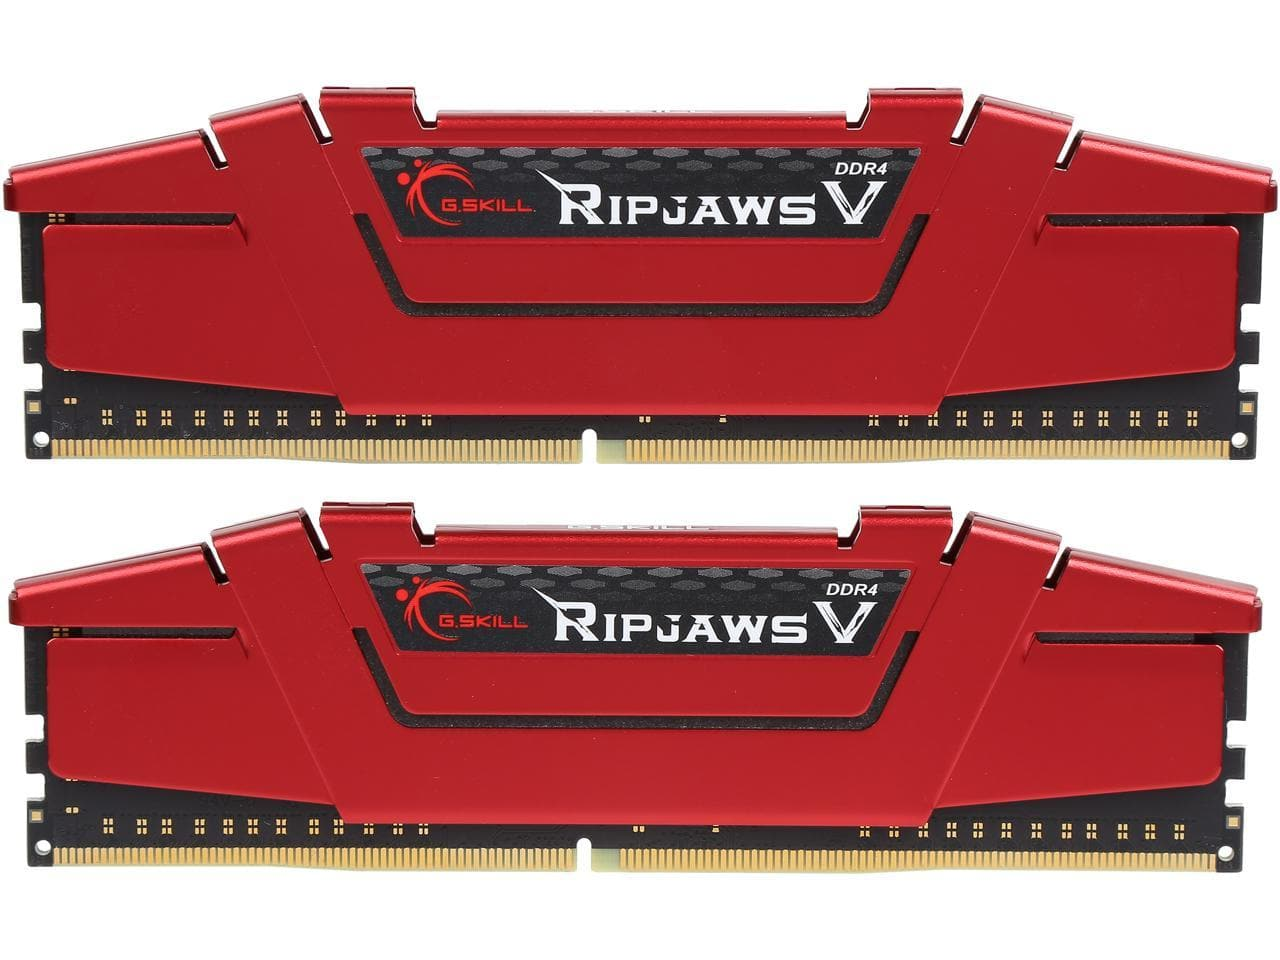 16GB (2x8GB) G.SKILL Ripjaws V Series DDR4 3200 Desktop Memory